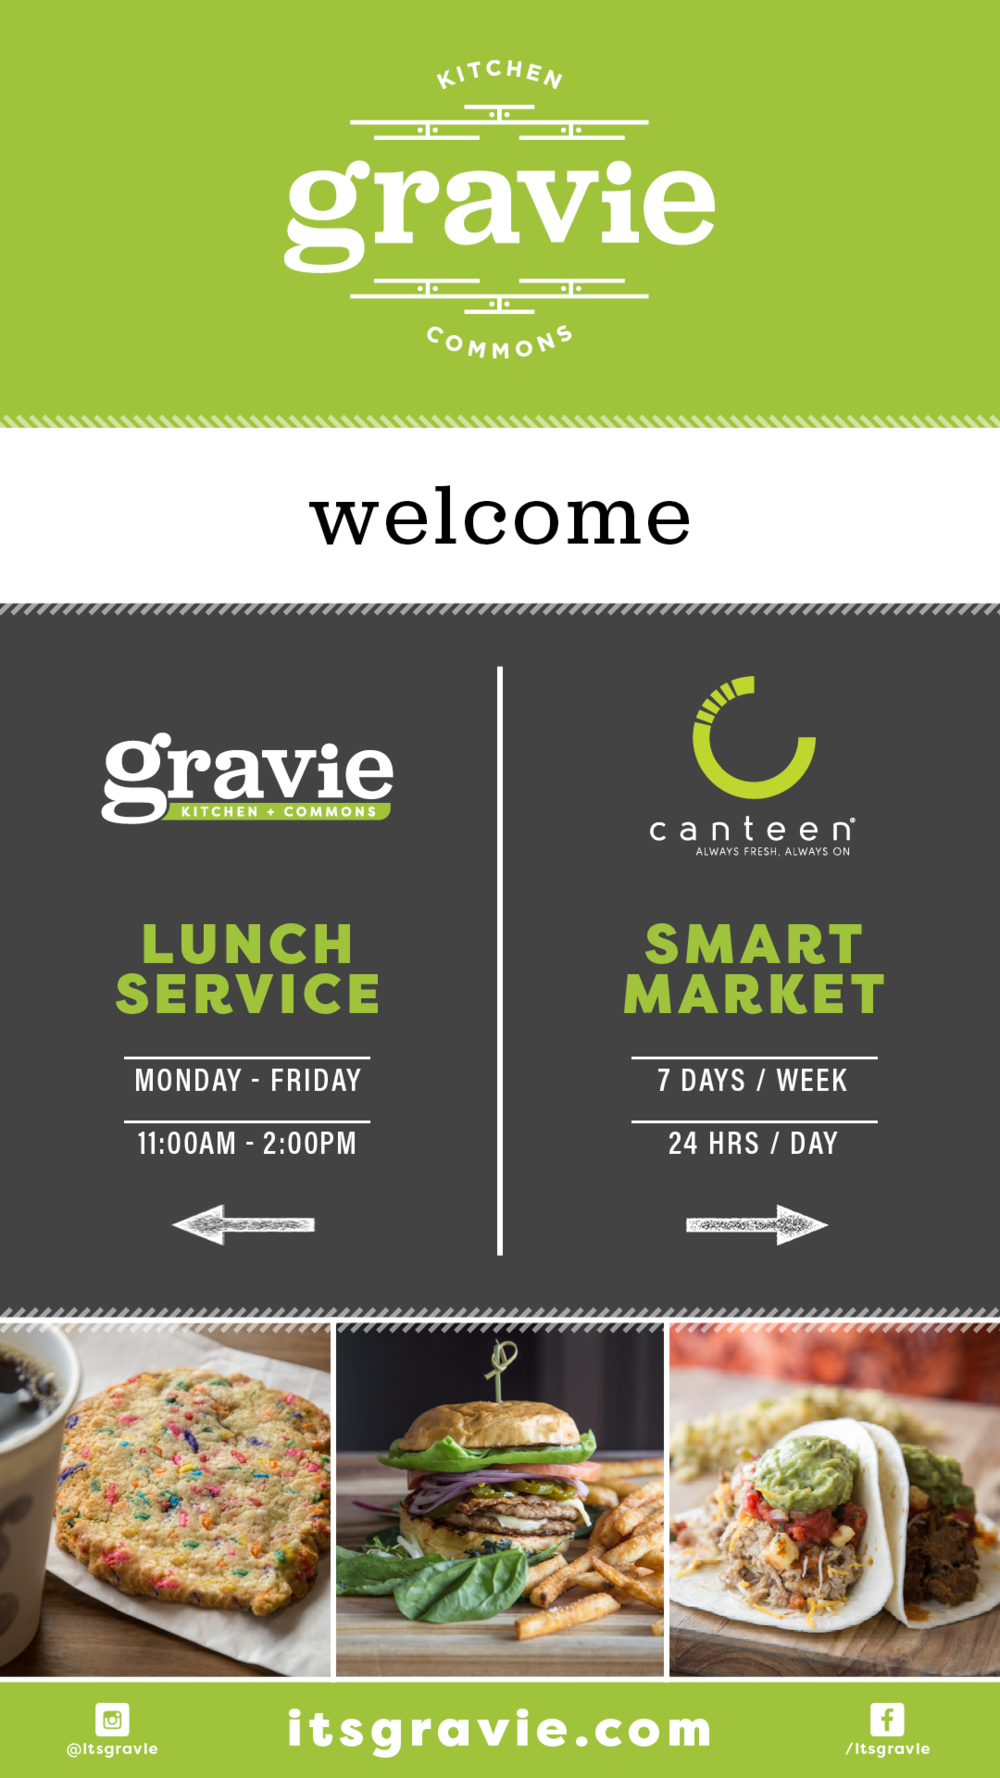 gravie-canteen-screen.png